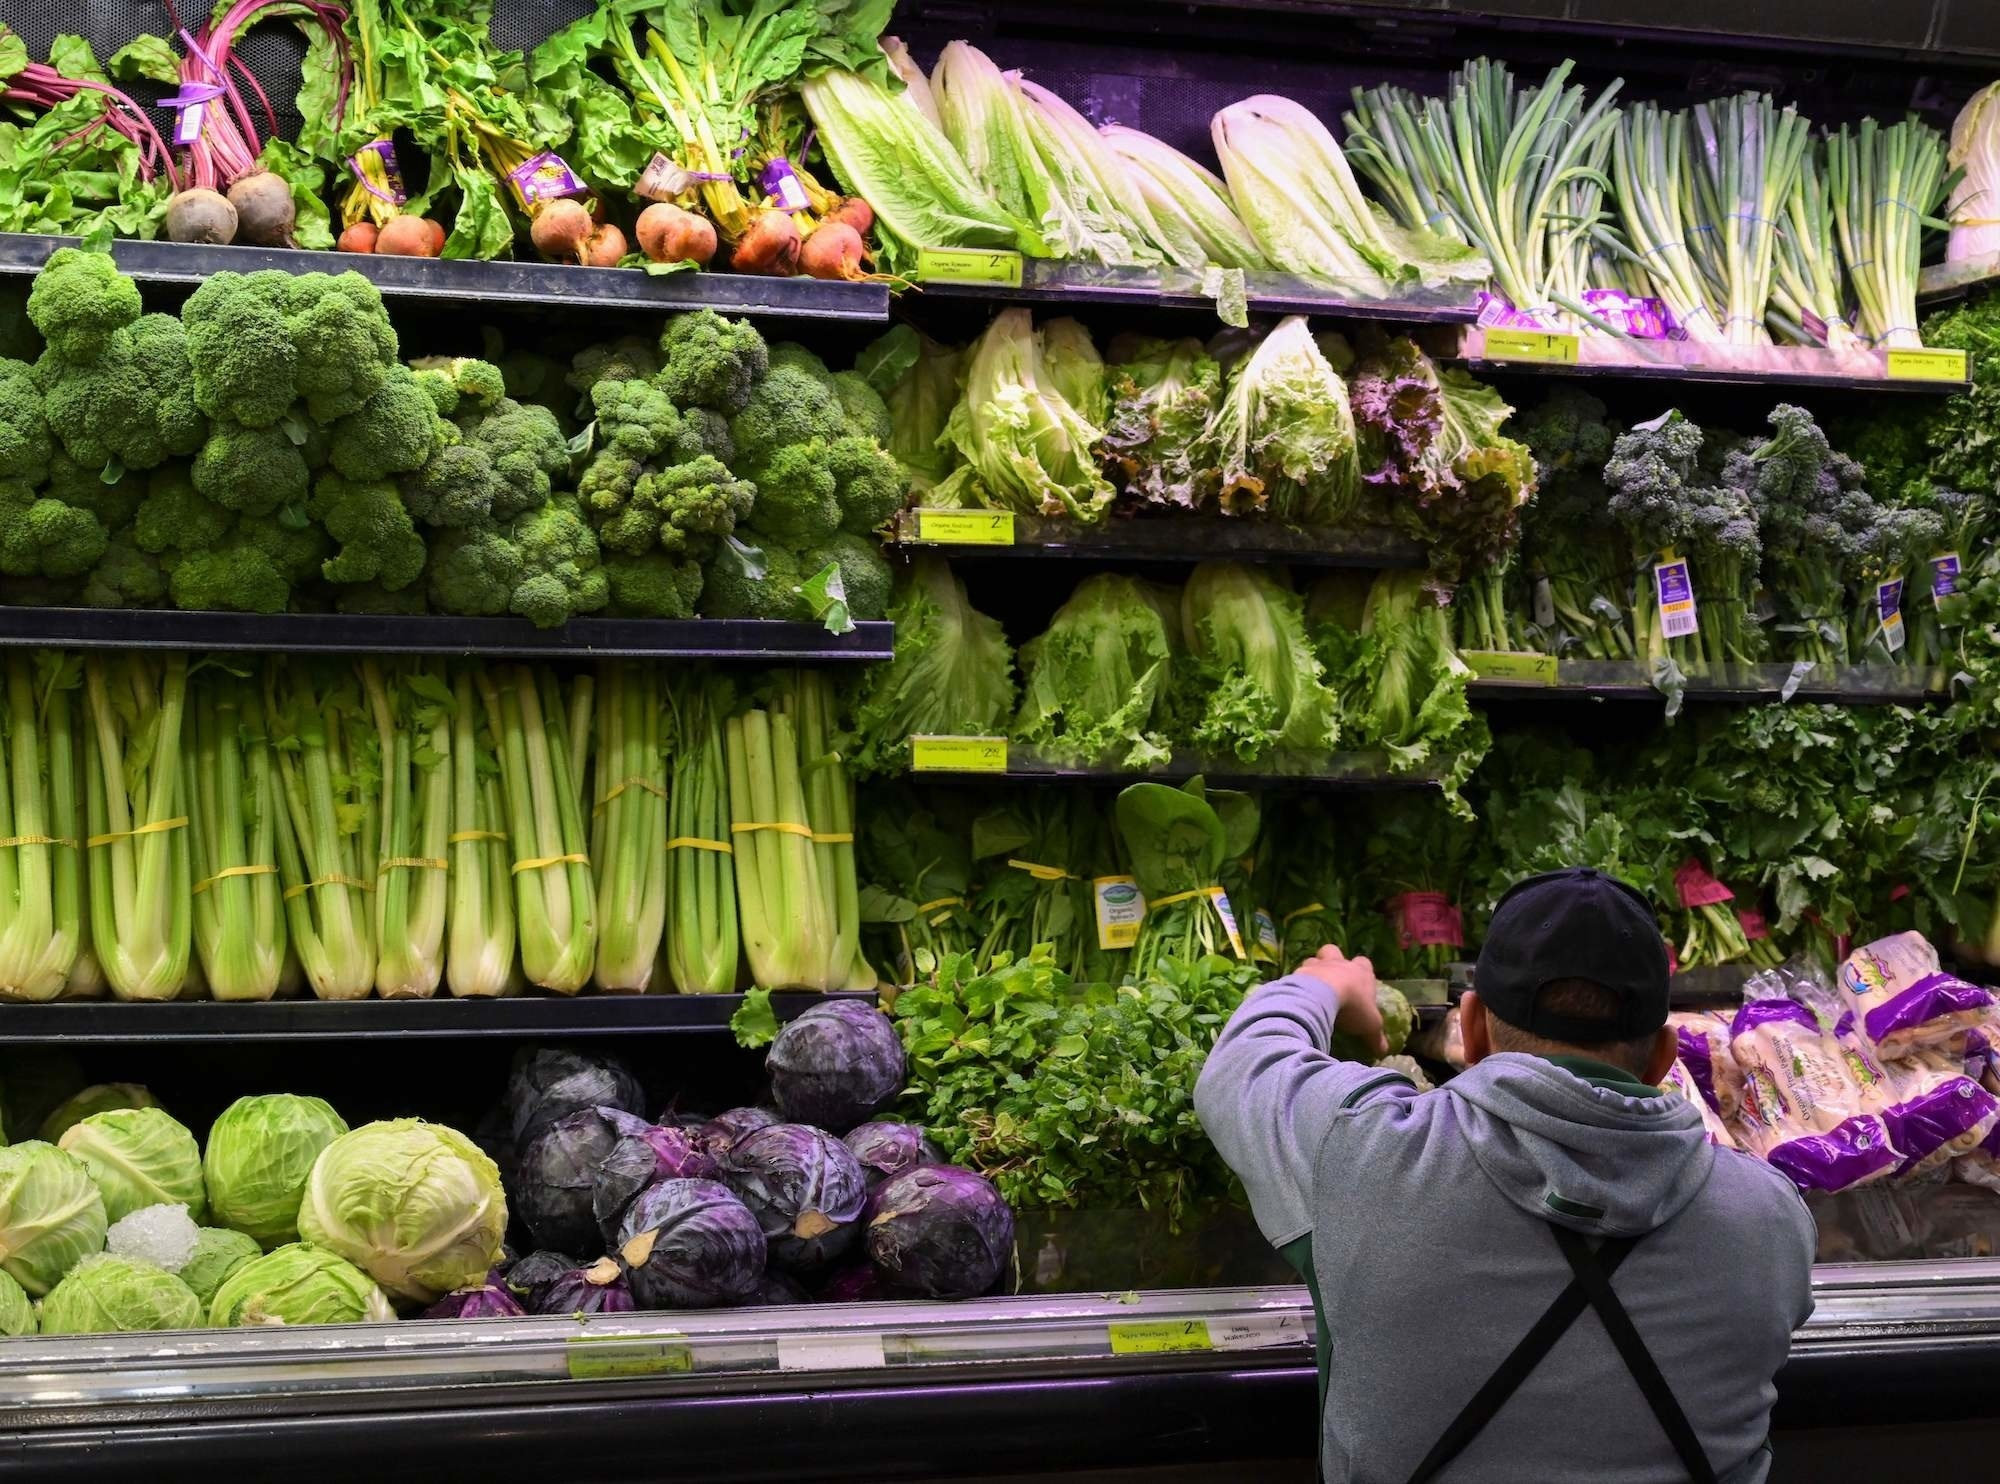 Discount store produce as healthy as counterparts in Whole Foods